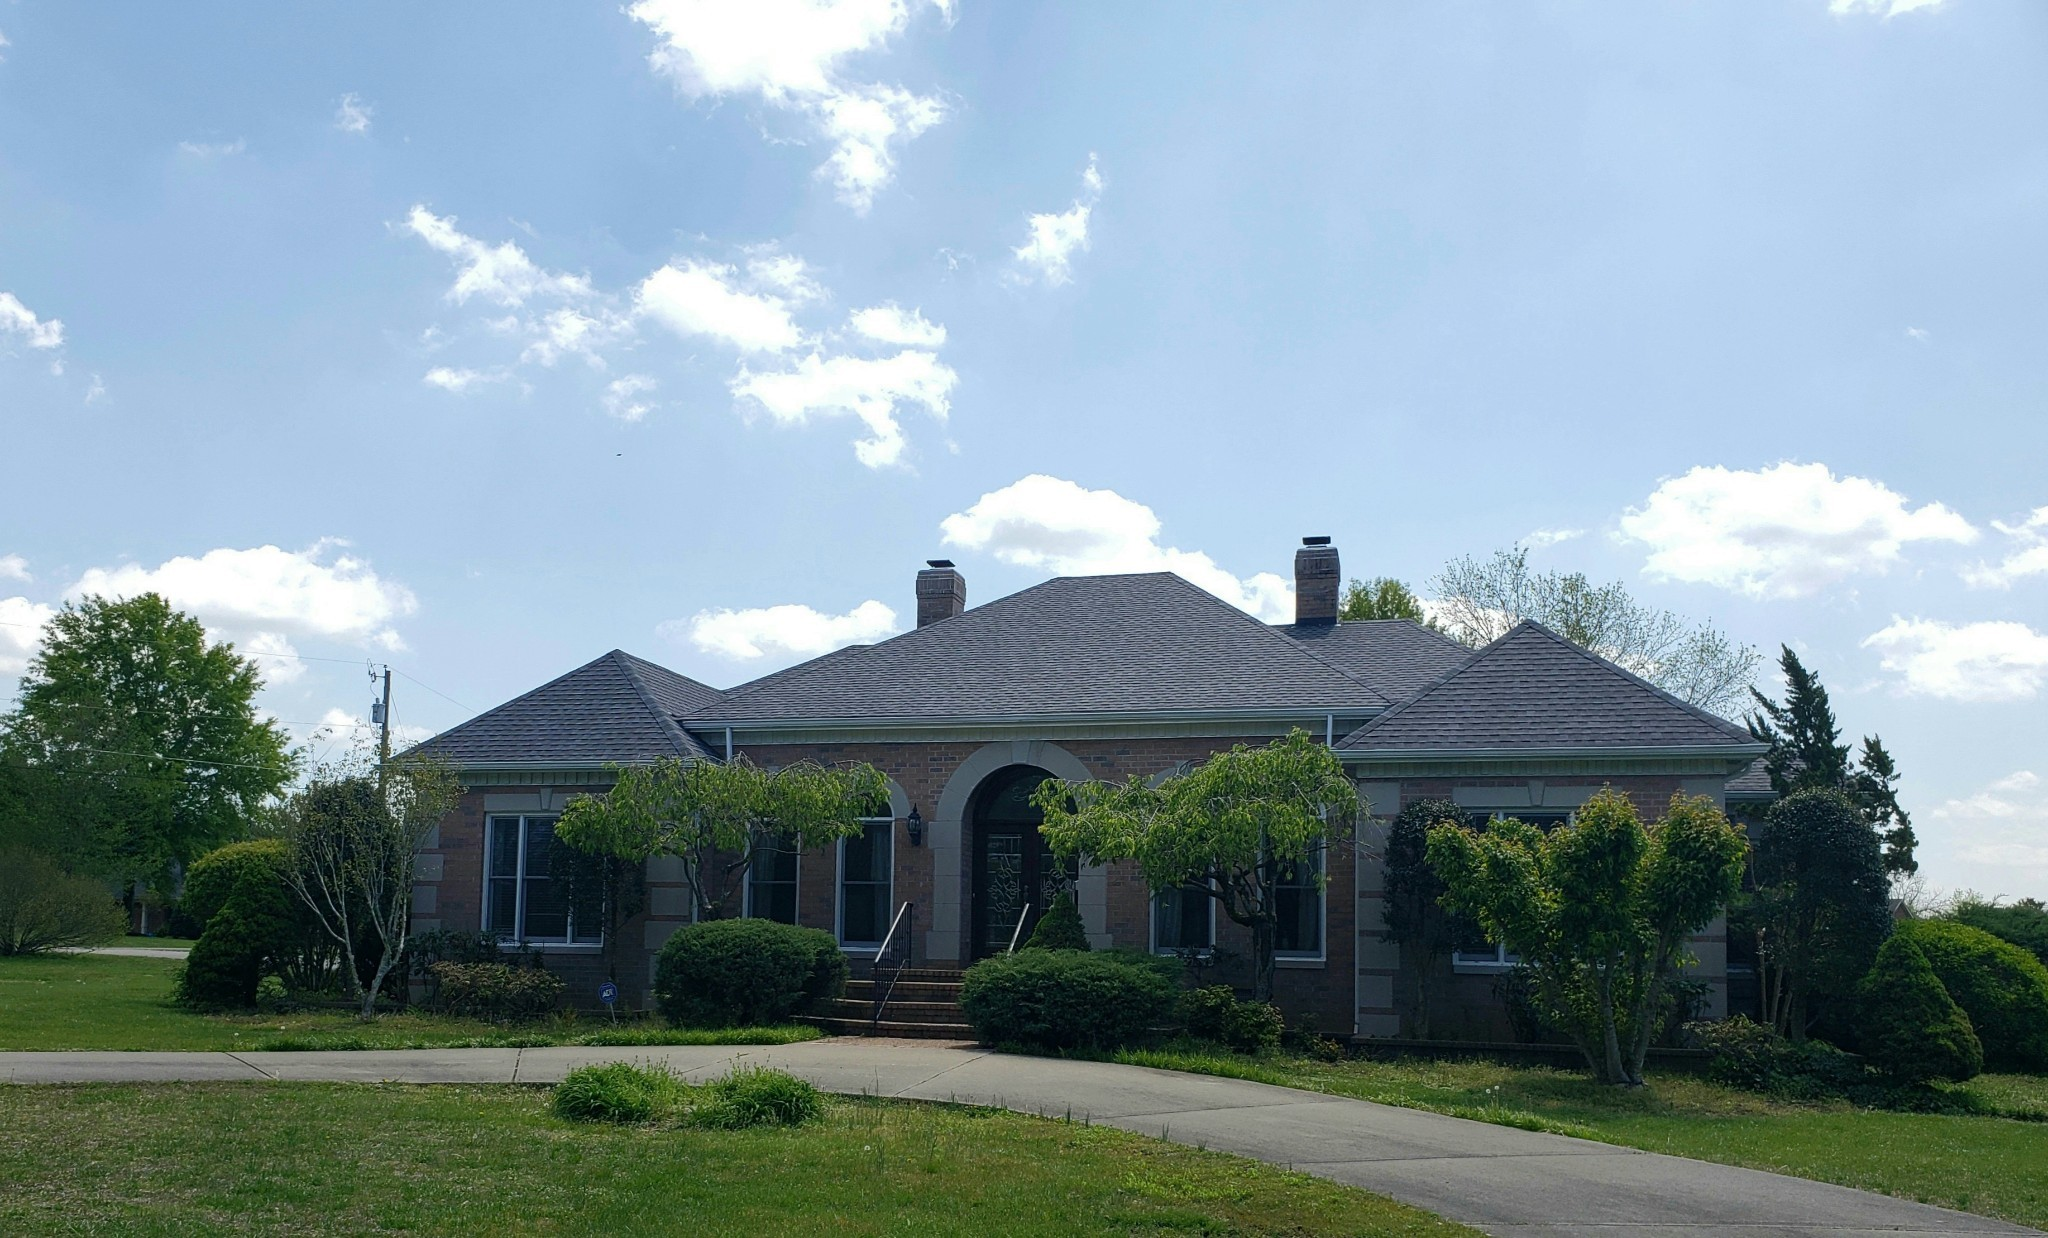 Stunning All Brick 4 BR/3.5 Bath Home On Approximately 1 Acre!  101 Player Ct.,  Springfield, TN.  37172